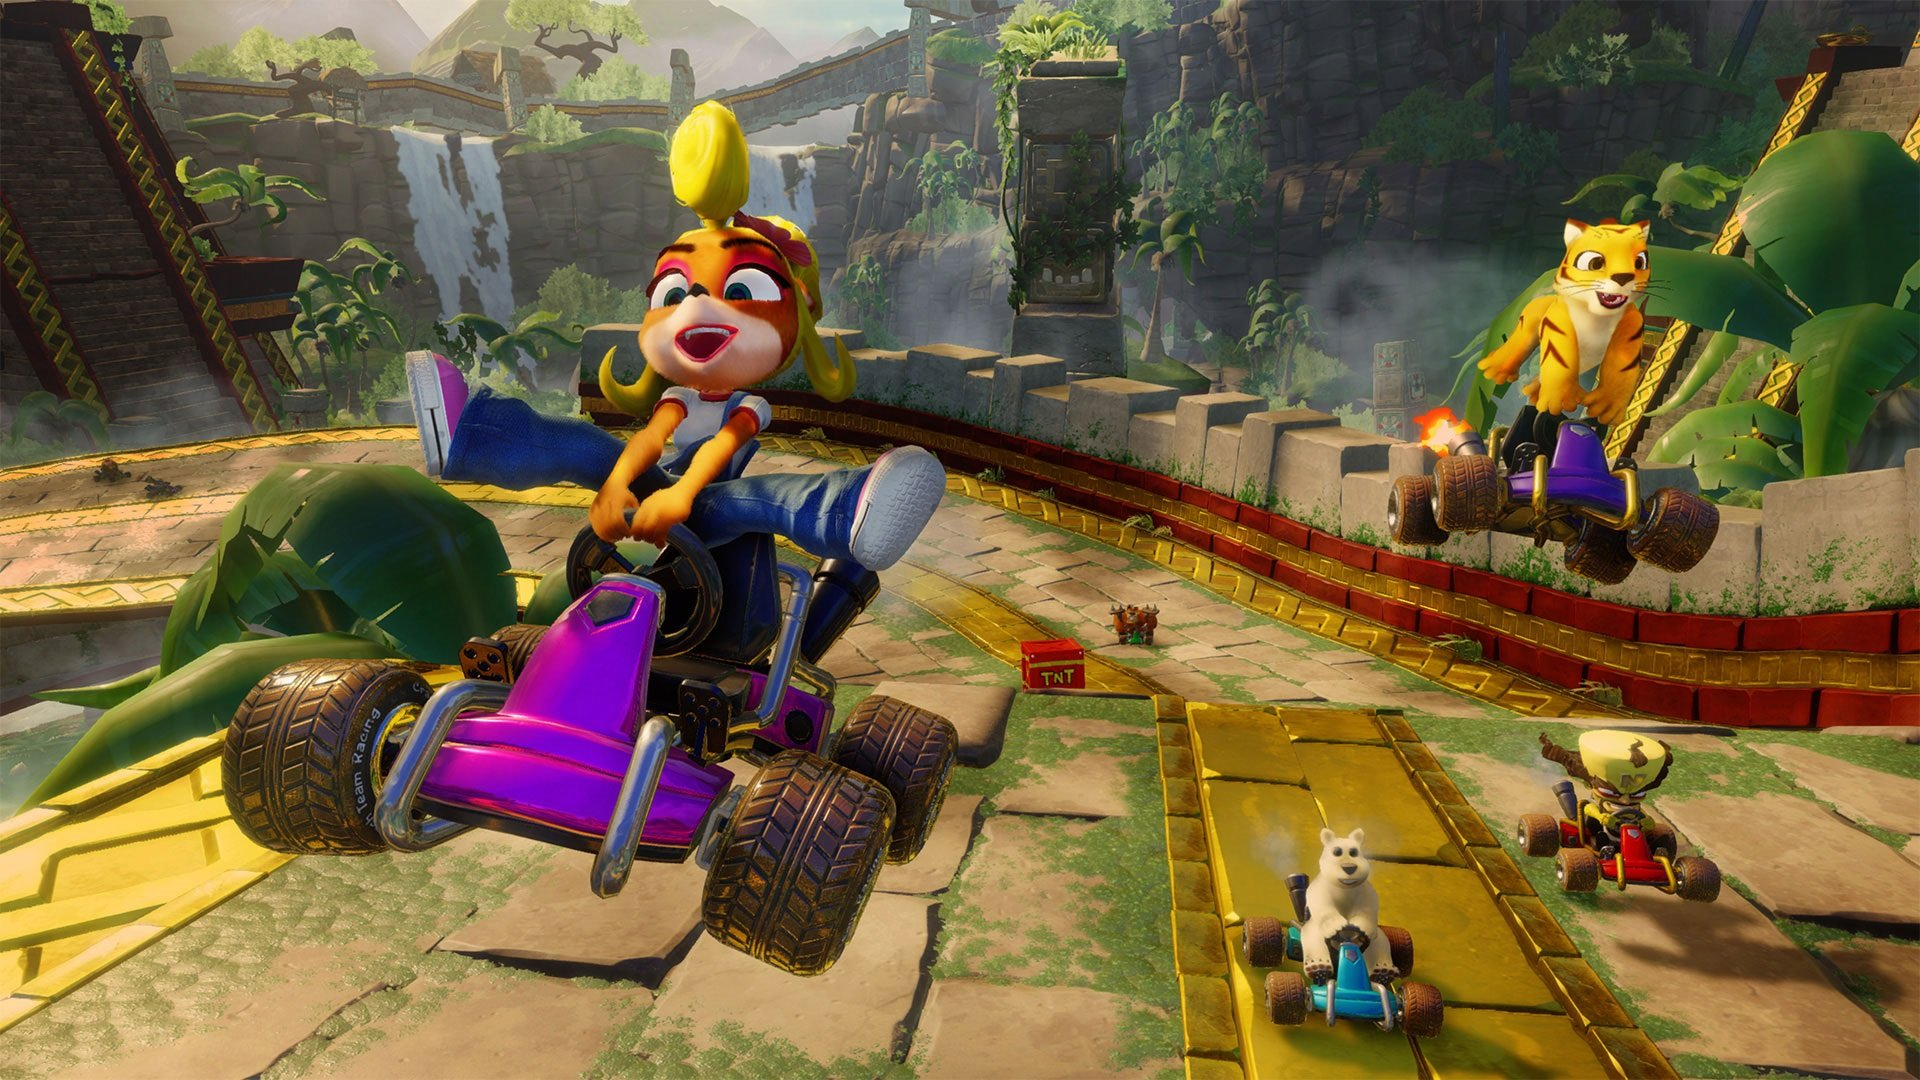 There are cheat code inputs for everything from unlocking Penta Penguin to triggering 1-Lap Races in Crash Team Nitro-Fueled.